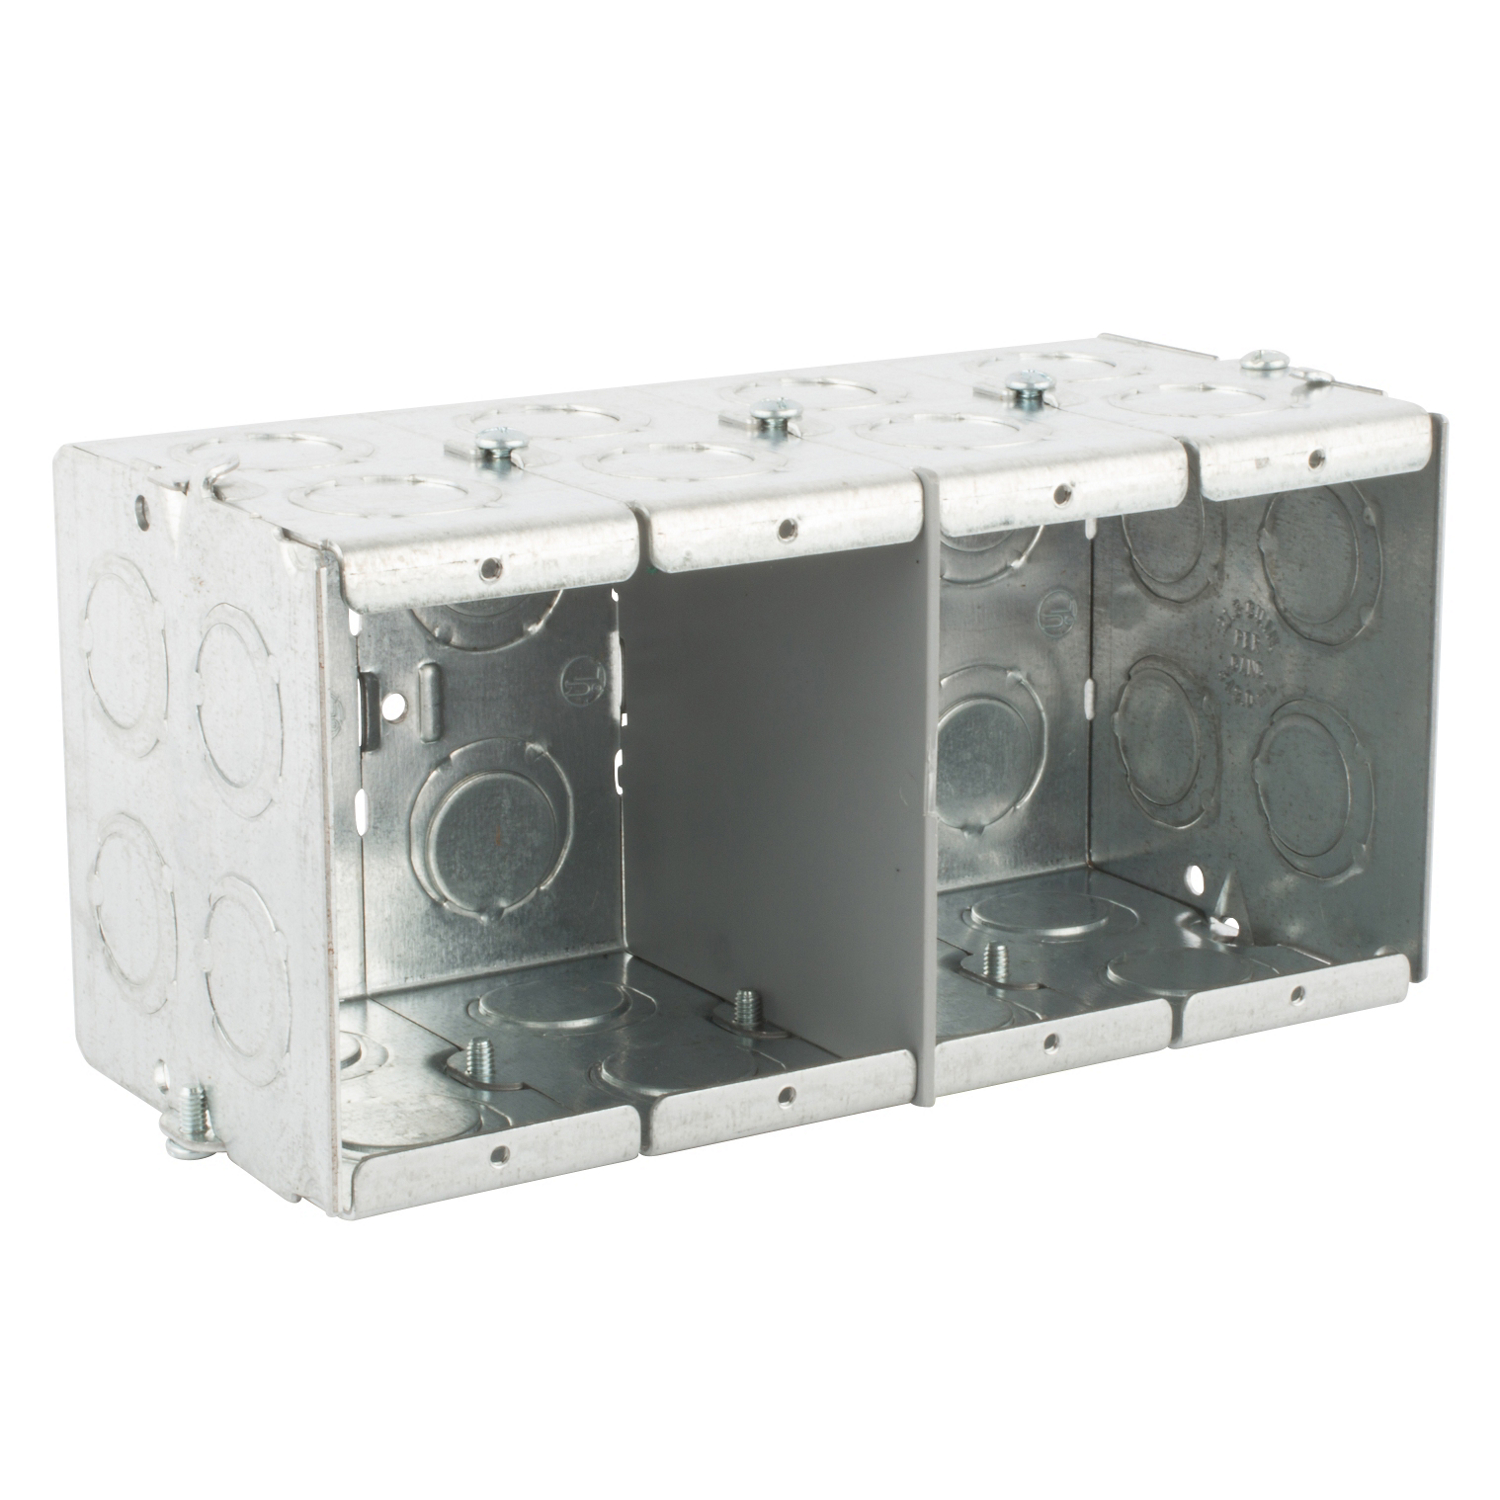 STCGW435G STL-CTY GW435-G 3-1/2D 4G MASO;Steel City® GW-435-G Gangable Masonry Box, Steel, 93.5 cu-in Capacity, 4 Gangs, 1 Outlets, 32 Knockouts